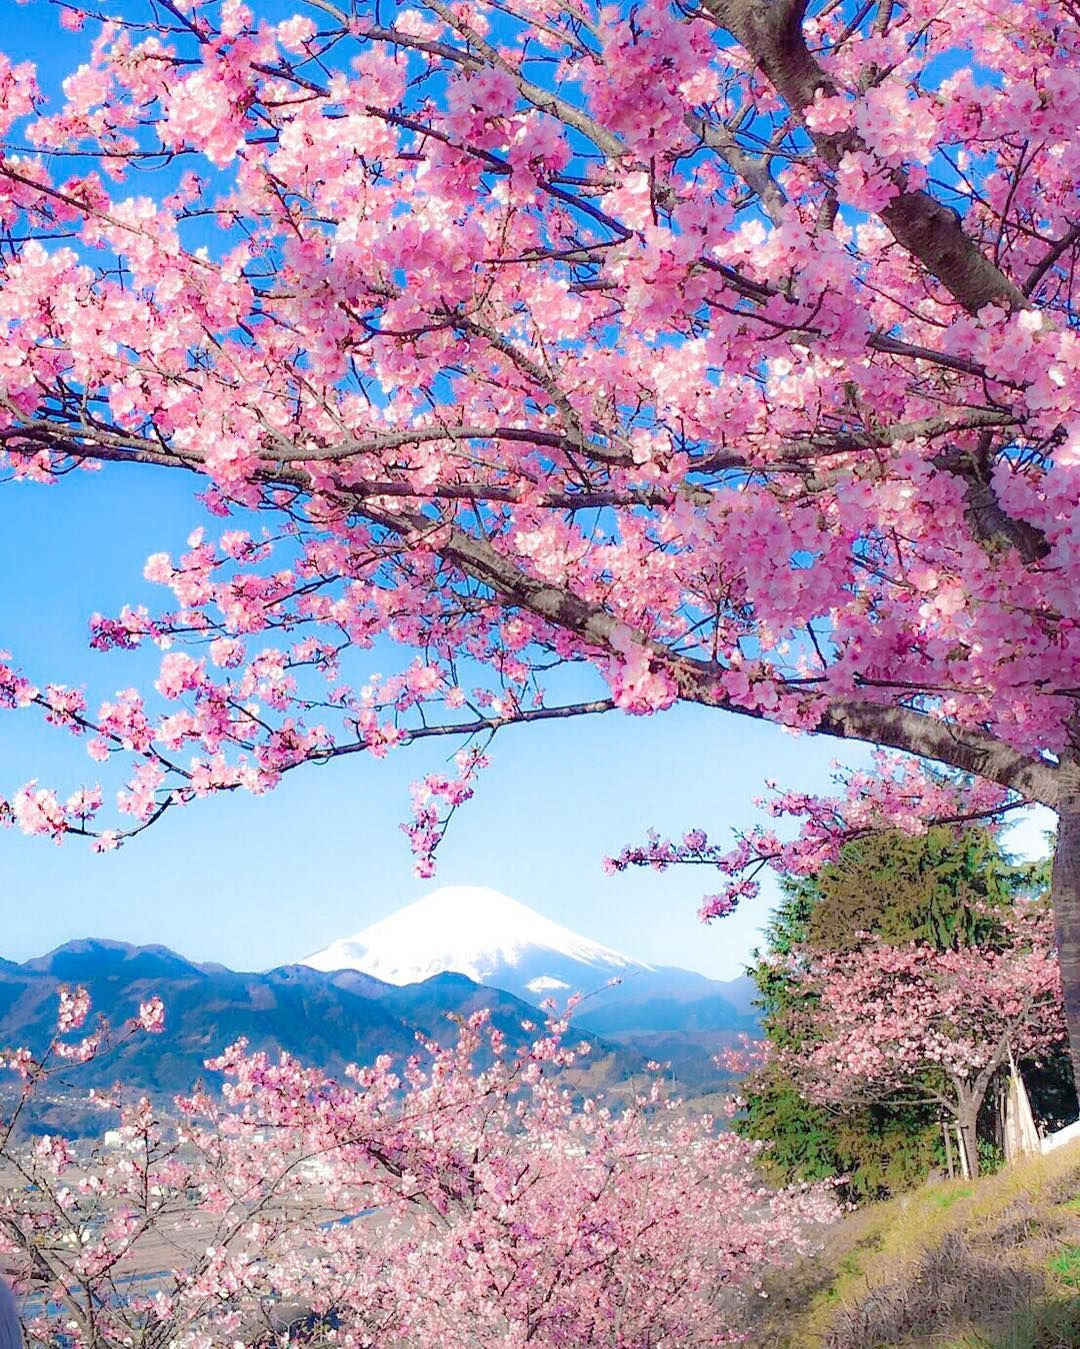 Japan's Early Blossoming Kawazu Cherry Blossoms Are In